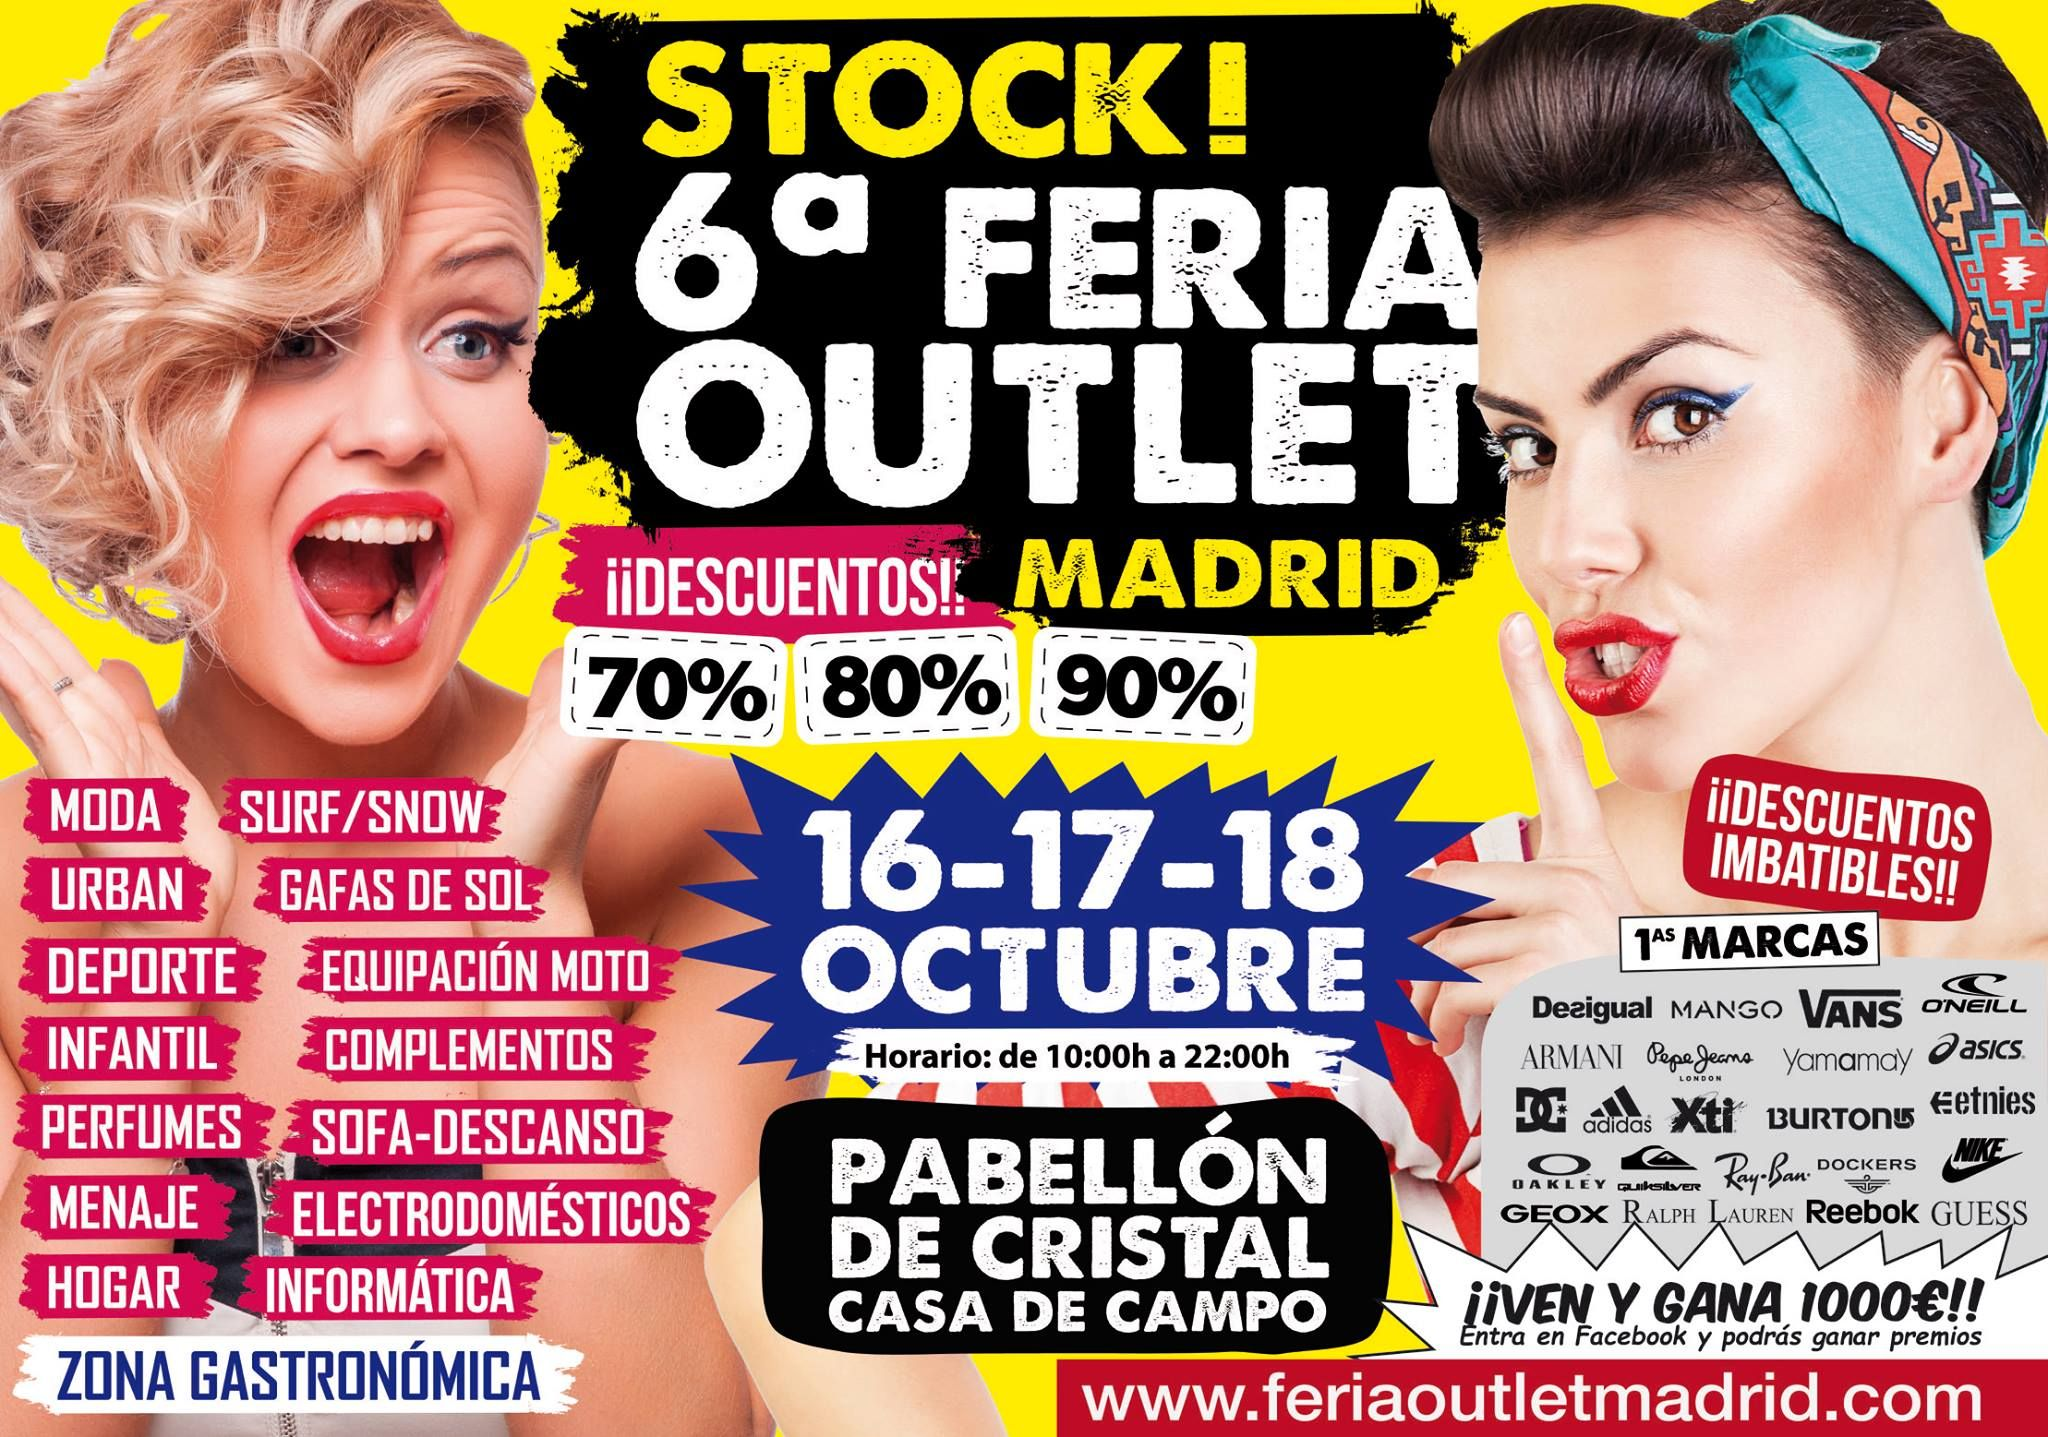 Madrid recibe a la feria outlet madrid y al salon look - Feria outlet madrid 2017 ...